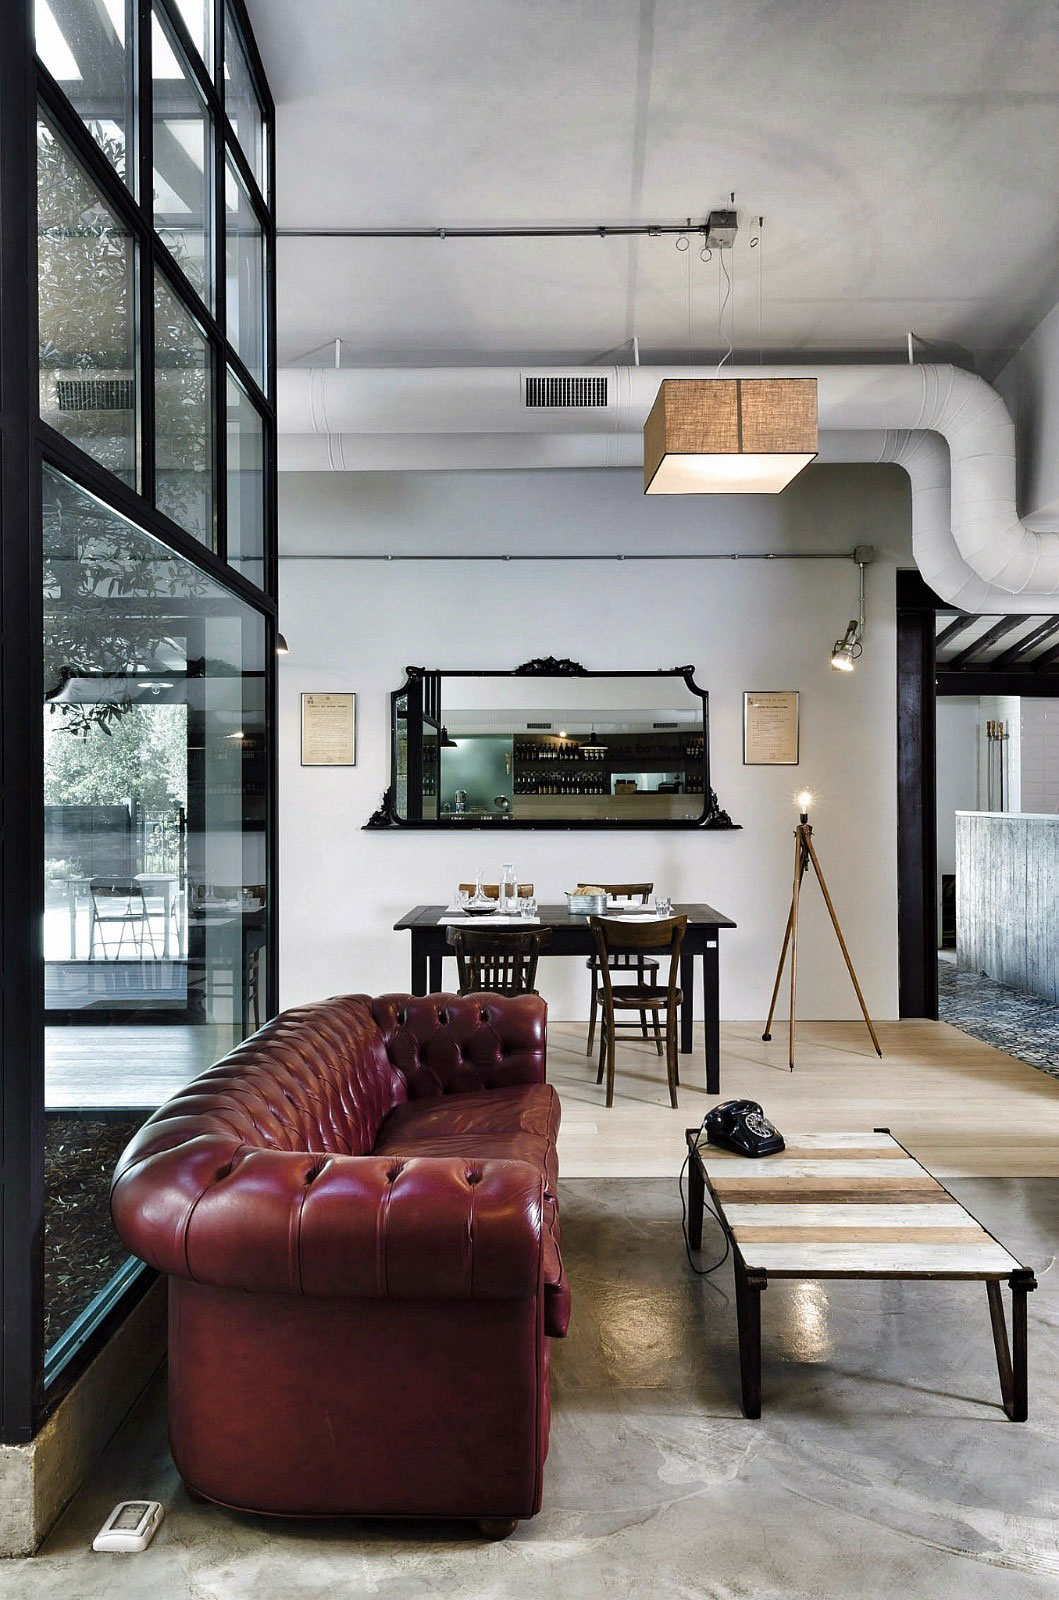 Kook by Noses Architects (4)